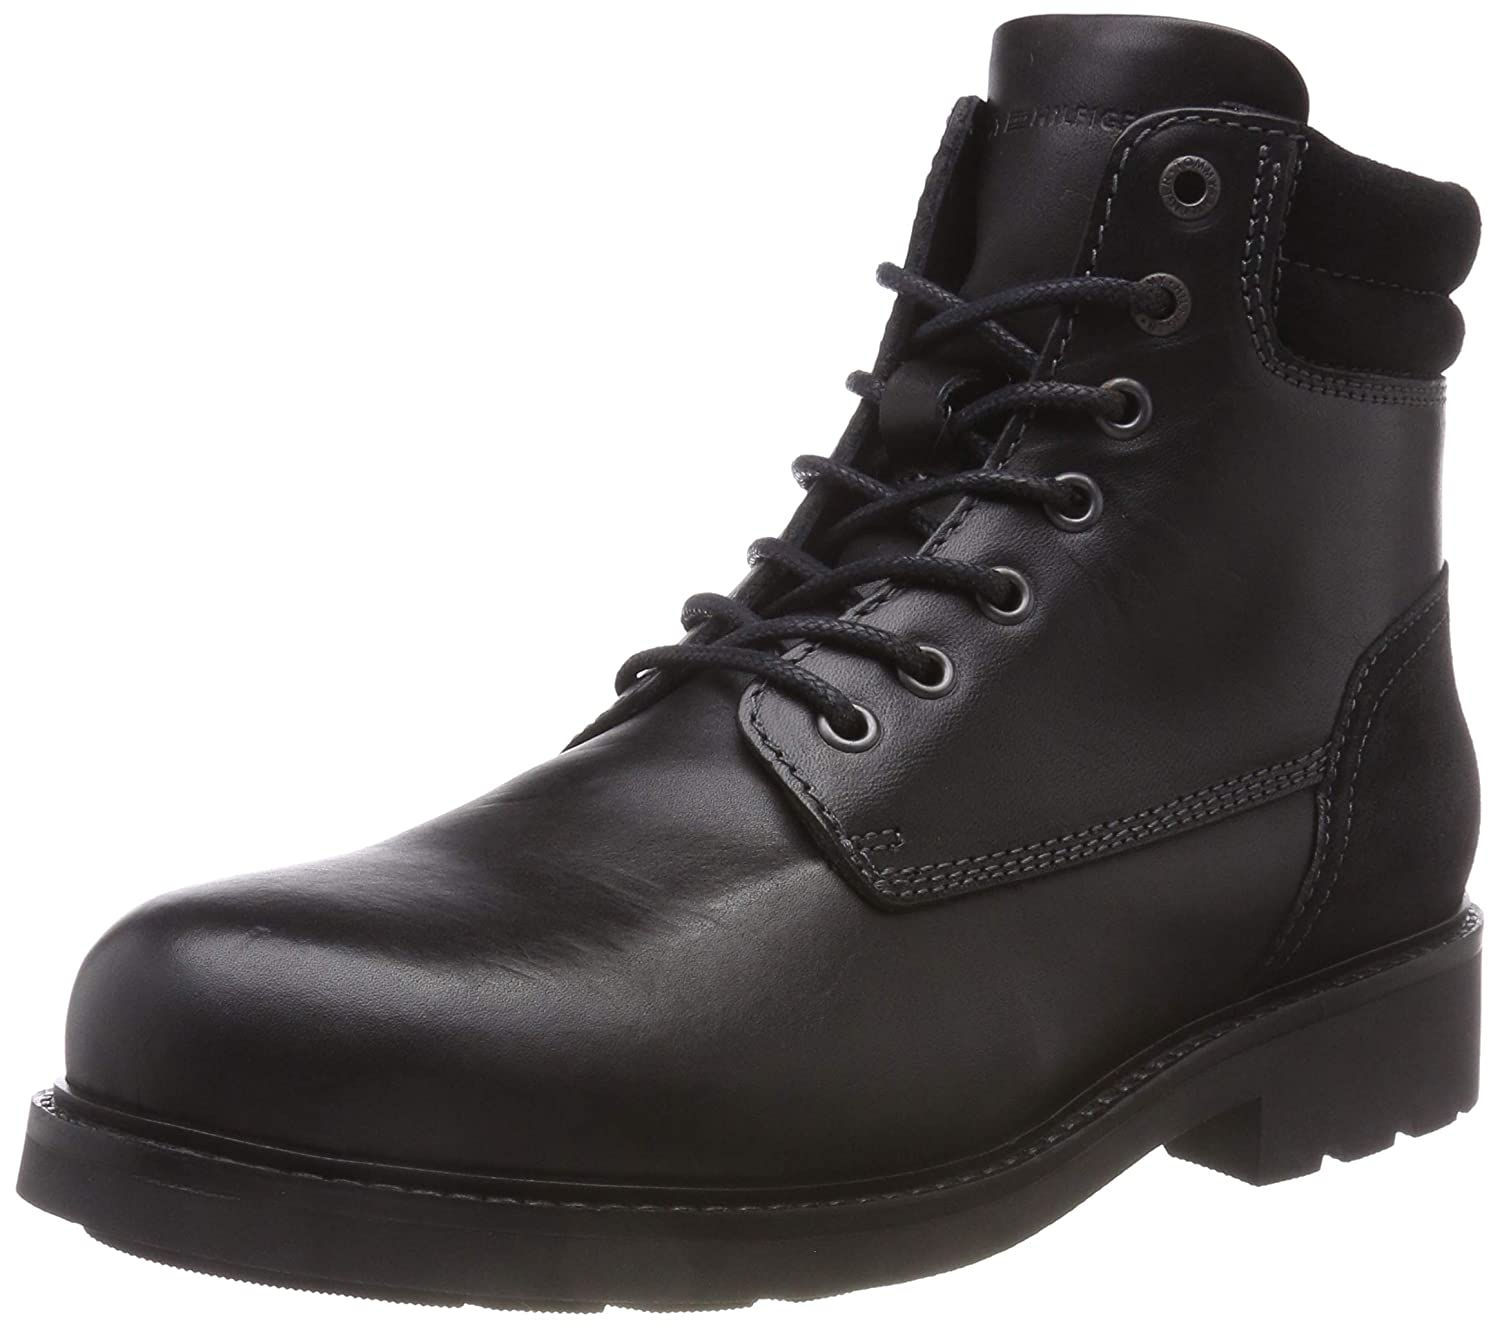 TALLA 41 EU. Tommy Hilfiger Active Leather Boot, Botas Militar para Hombre